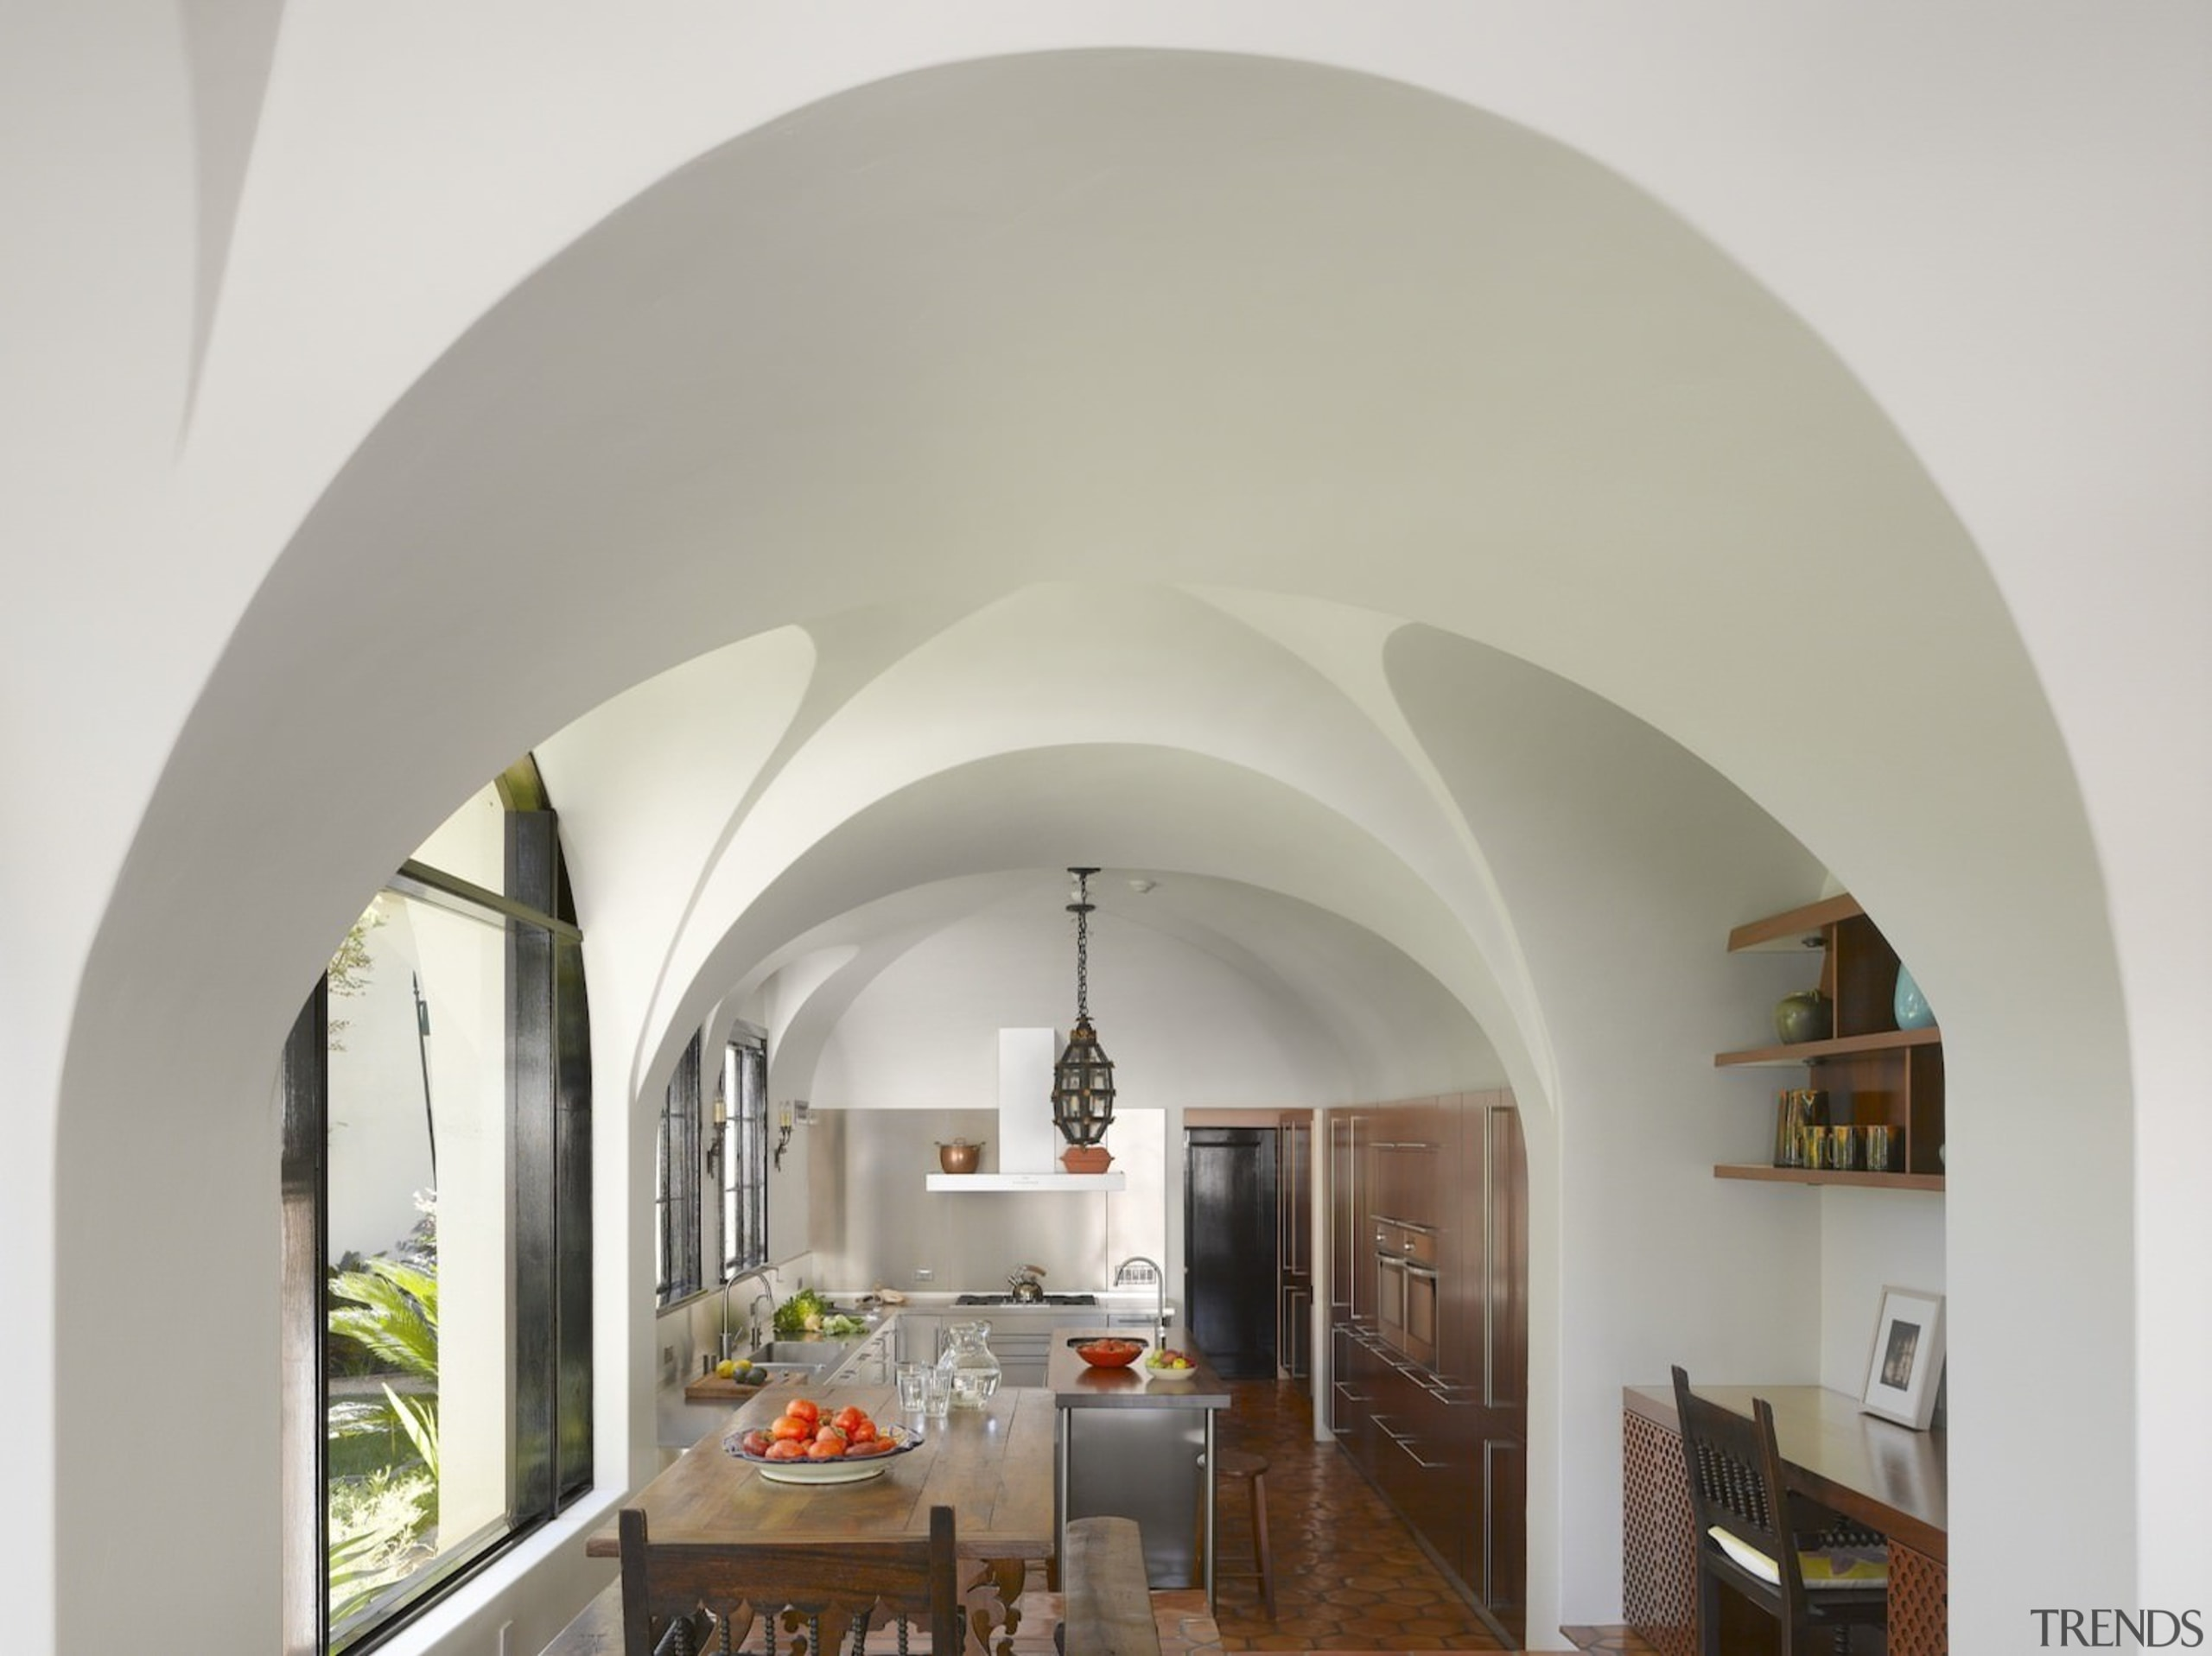 Vaulted ceilings add a level of elegance not arch, architecture, ceiling, estate, interior design, property, gray